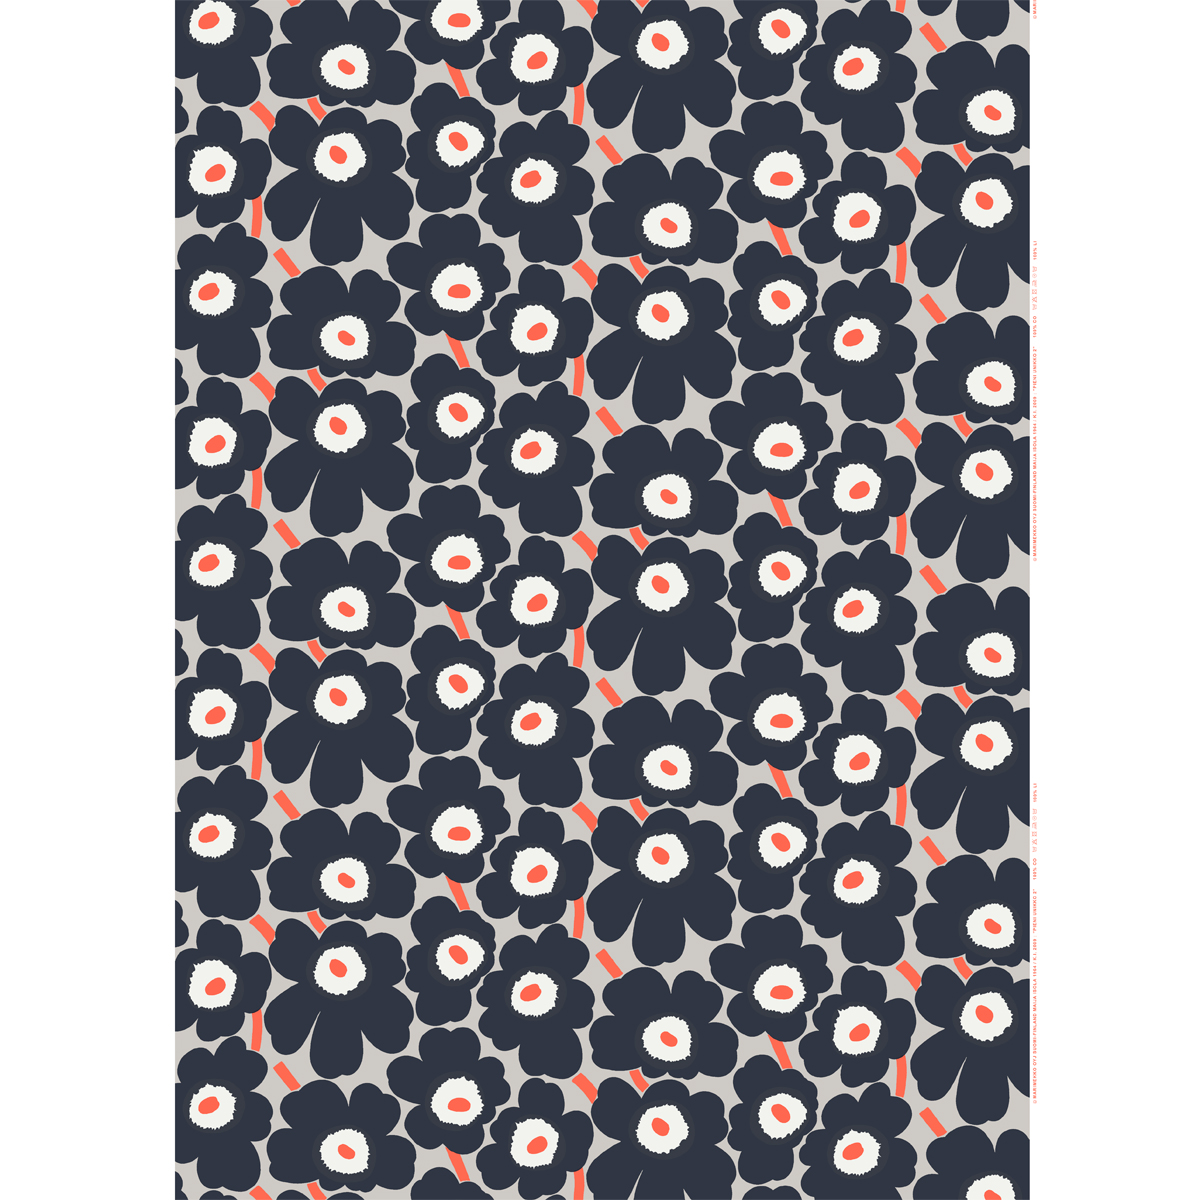 marimekko pieni unikko dark grey coral cotton fabric